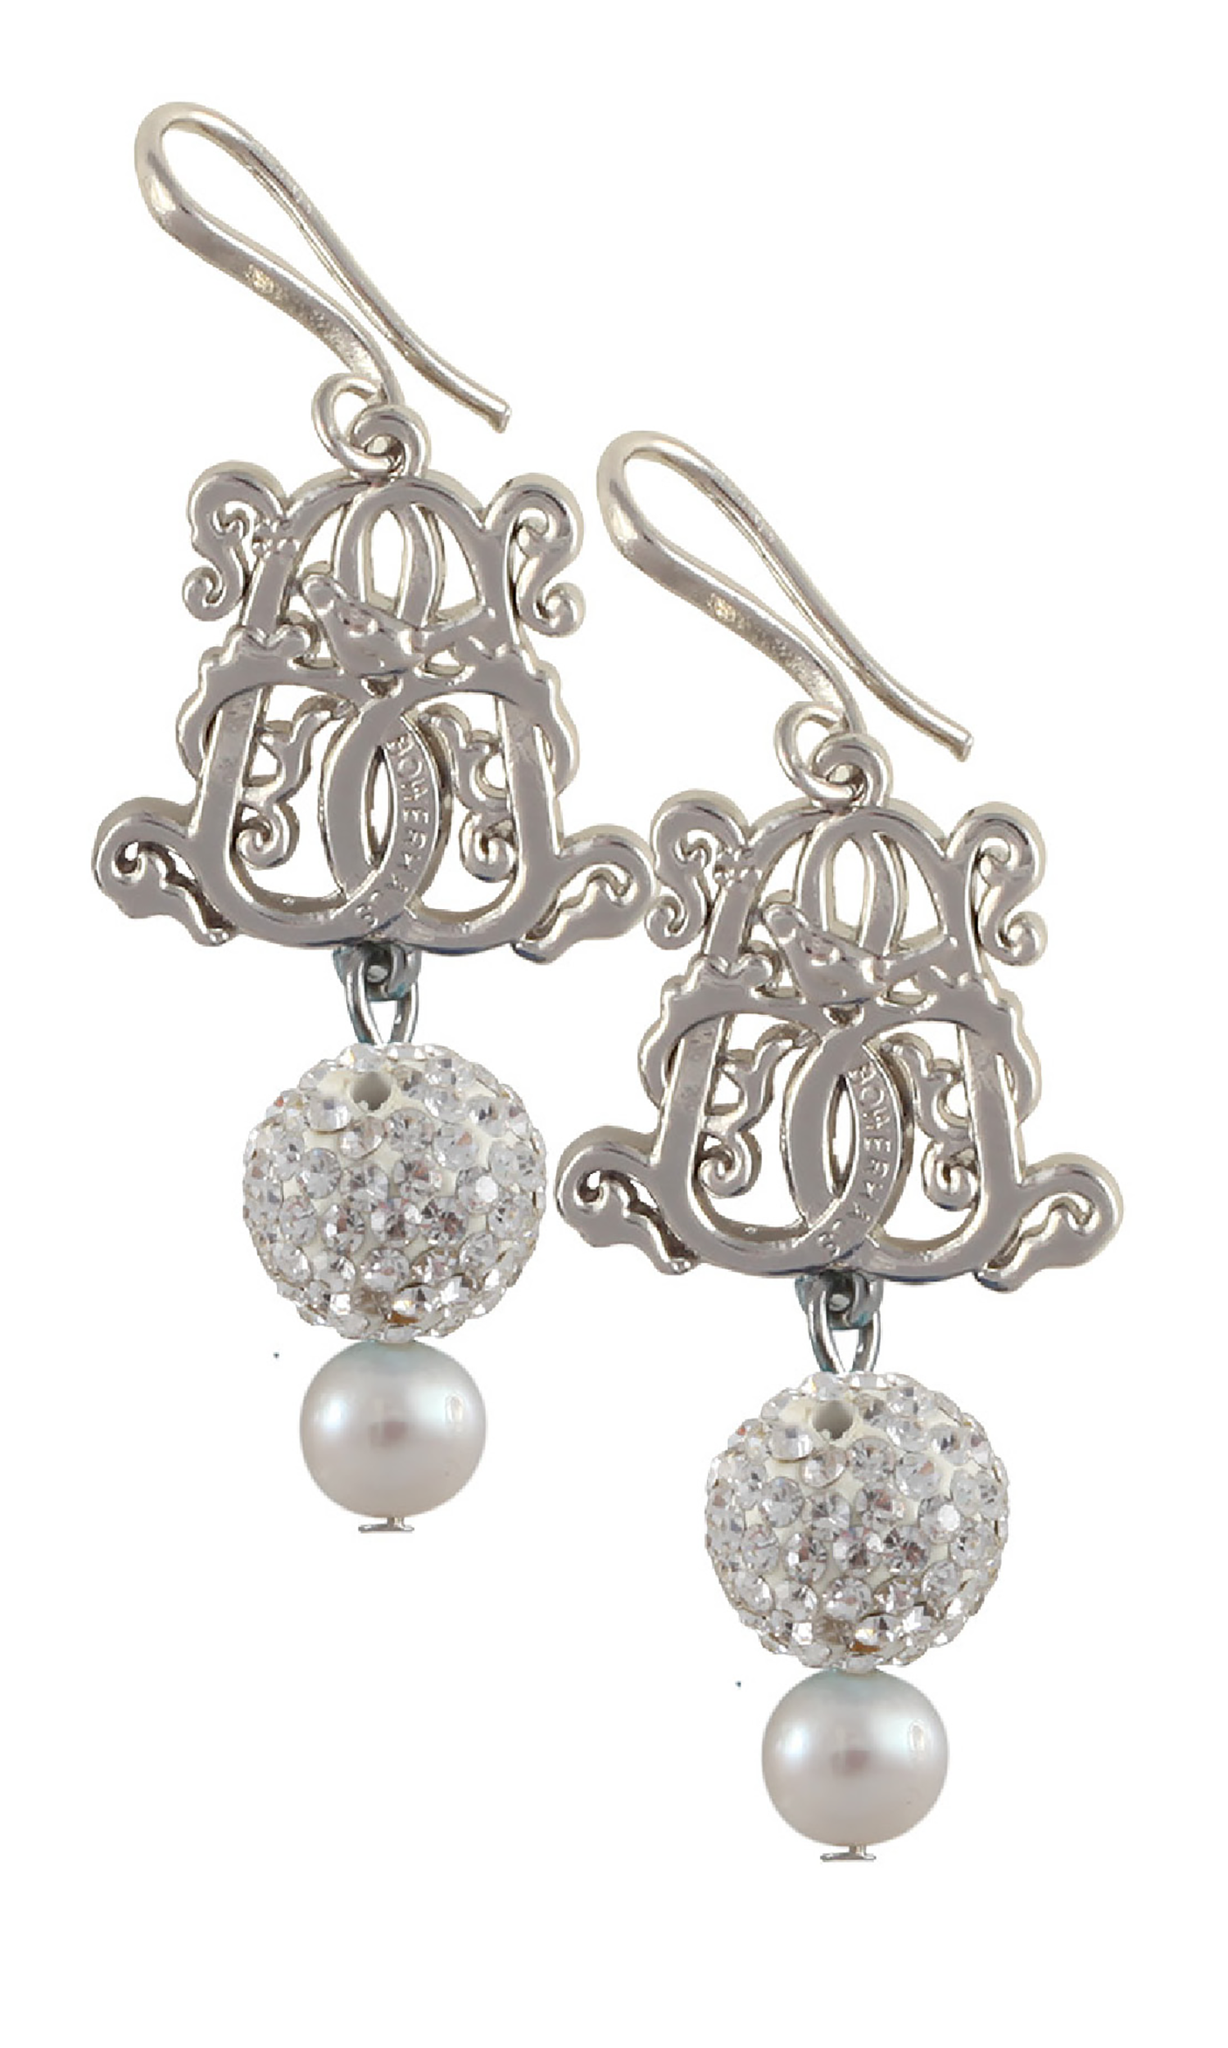 Tina Sparkle Earrings - Snow White | #designerearrings #designerjewellery #designerjewelry #jewellery #earrings #Duchess #fashion #designerfashion